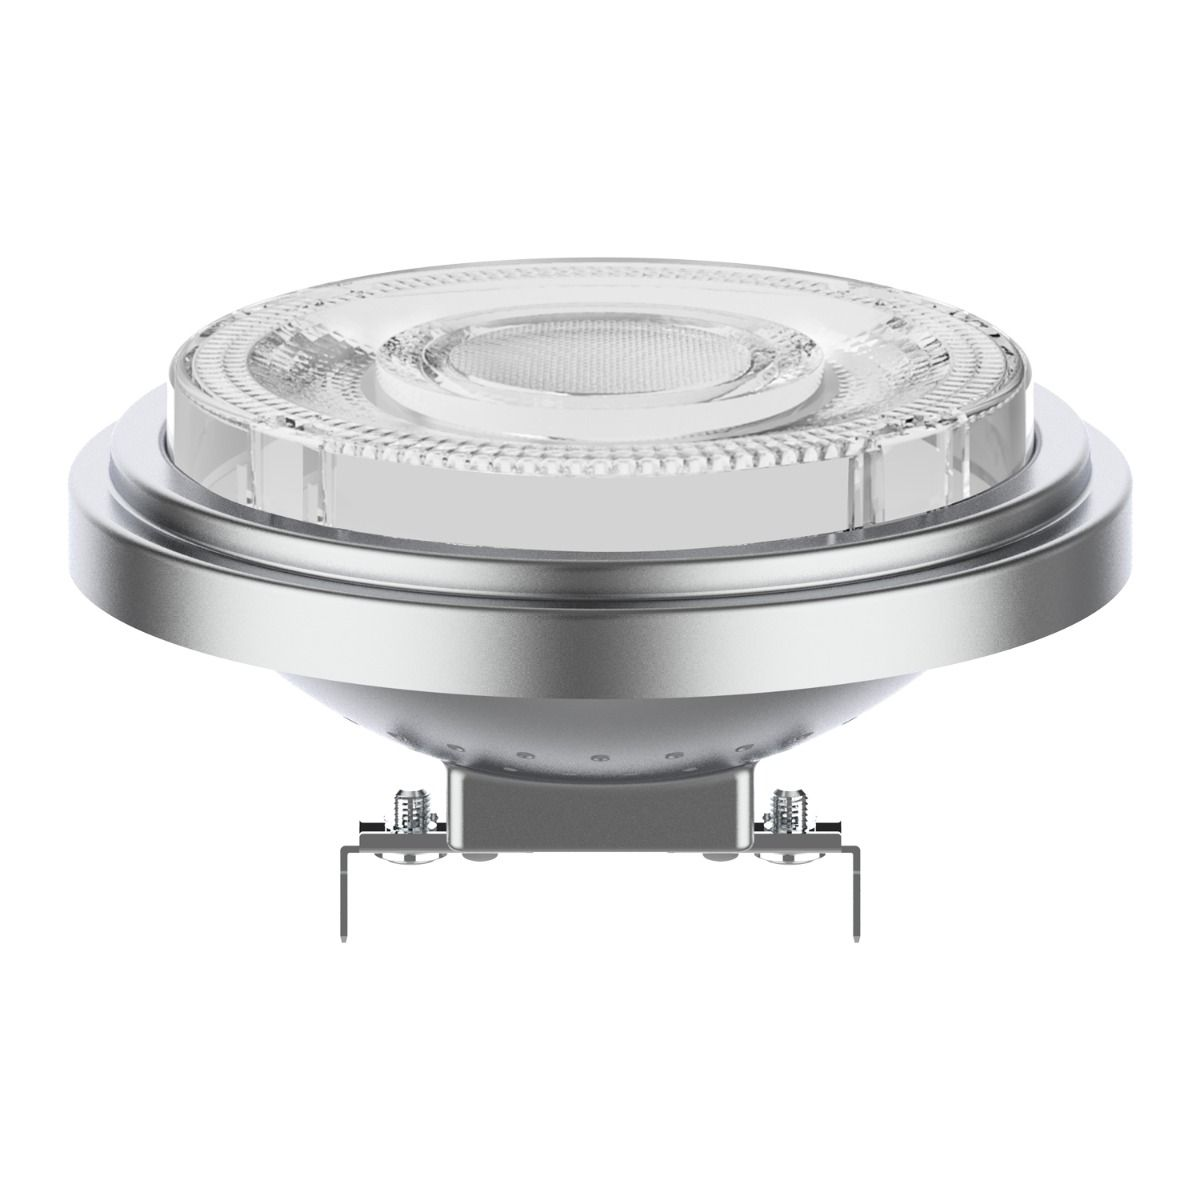 Noxion Lucent LED Spot AR111 G53 12V 7.3W 927 24D | Dimmable - Highest Colour Rendering - Replacer for 50W